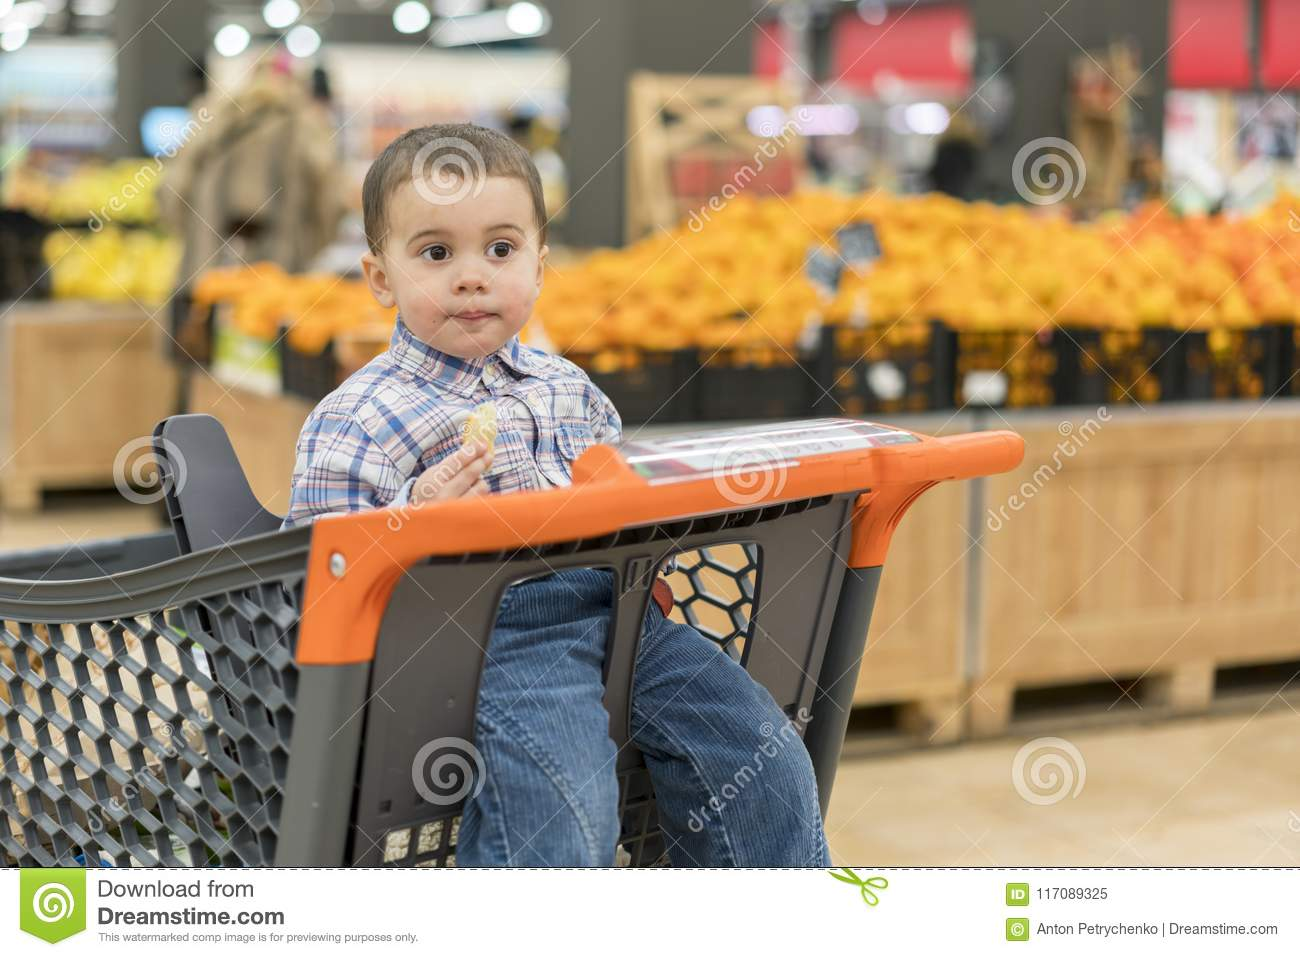 d0b0a2767 Cute Boy Eating A Bun Or Pita Bread In A Supermarket In The Cart ...